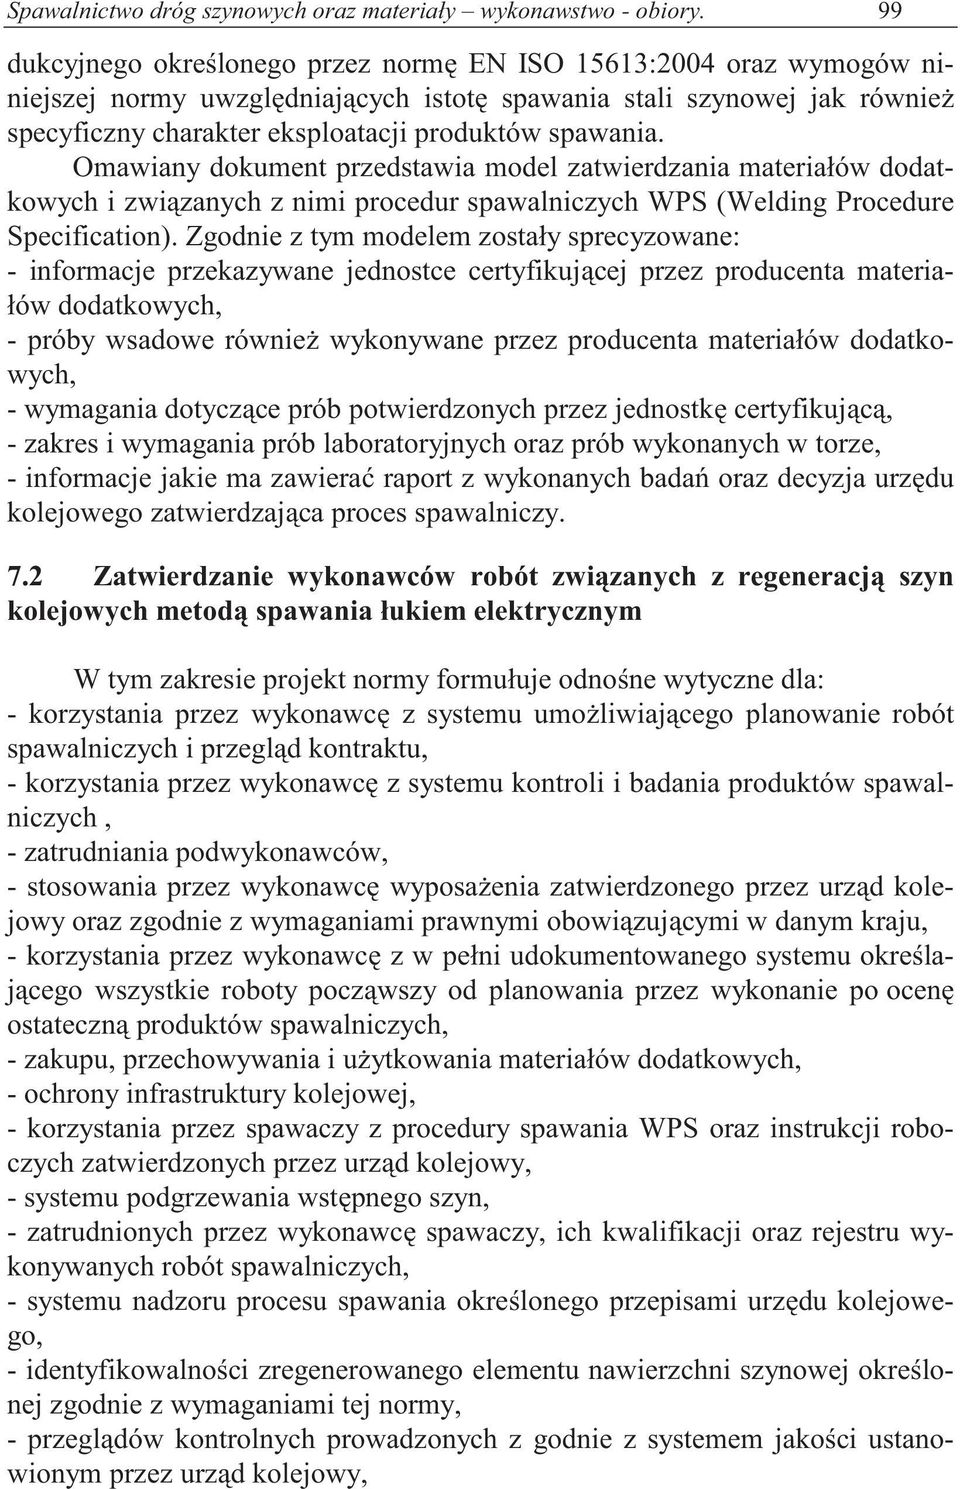 Omawiany dokument przedstawia model zatwierdzania materiałów dodatkowych i zwi zanych z nimi procedur spawalniczych WPS (Welding Procedure Specification).